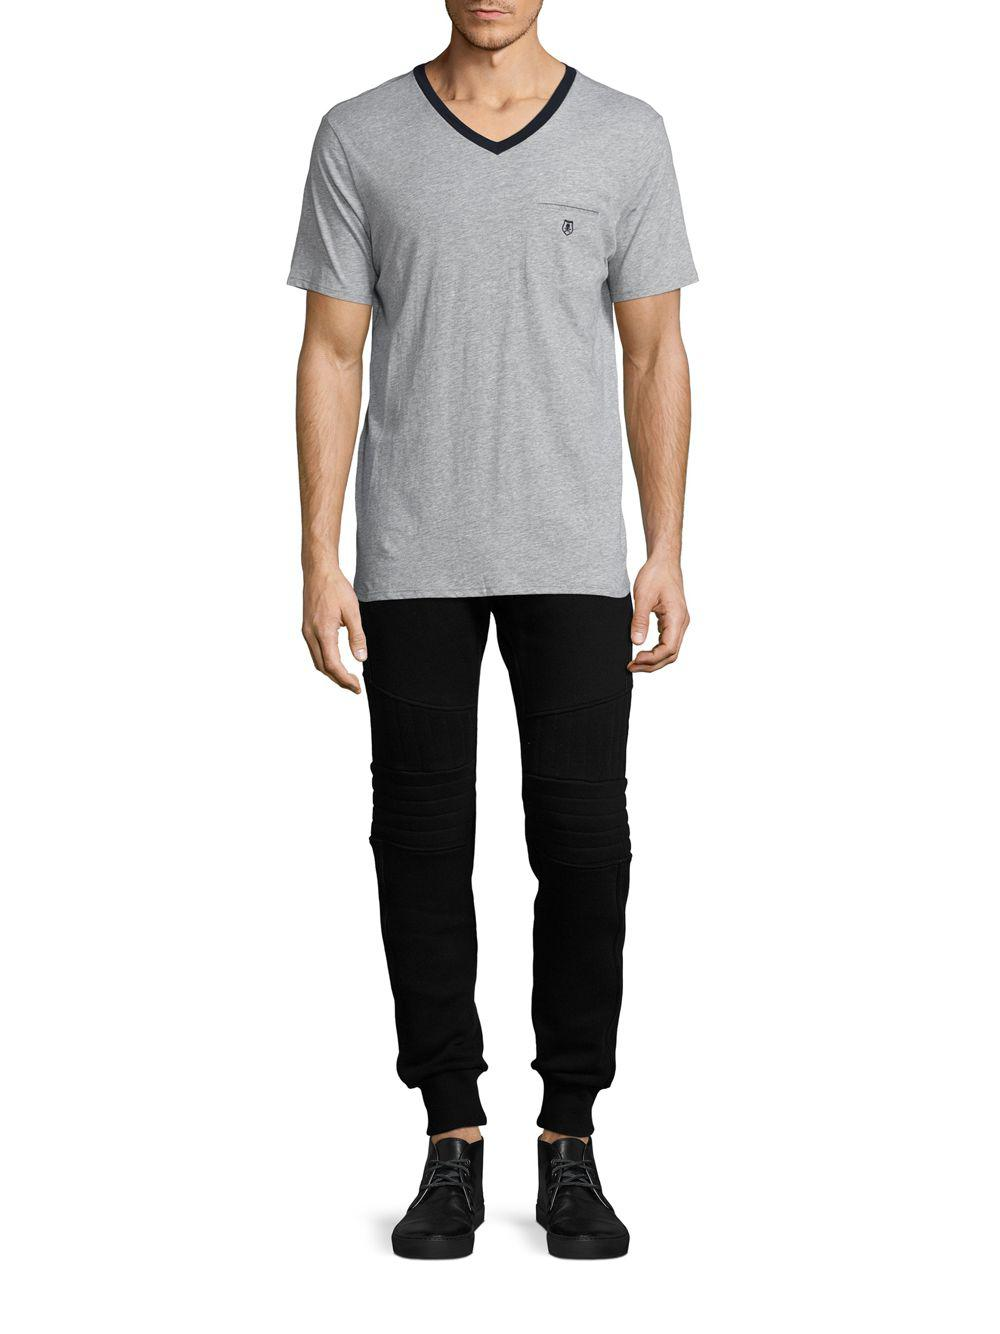 db63a65a9d8 Lyst - The Kooples Sport Short Sleeve V-neck T Shirt in Gray for Men